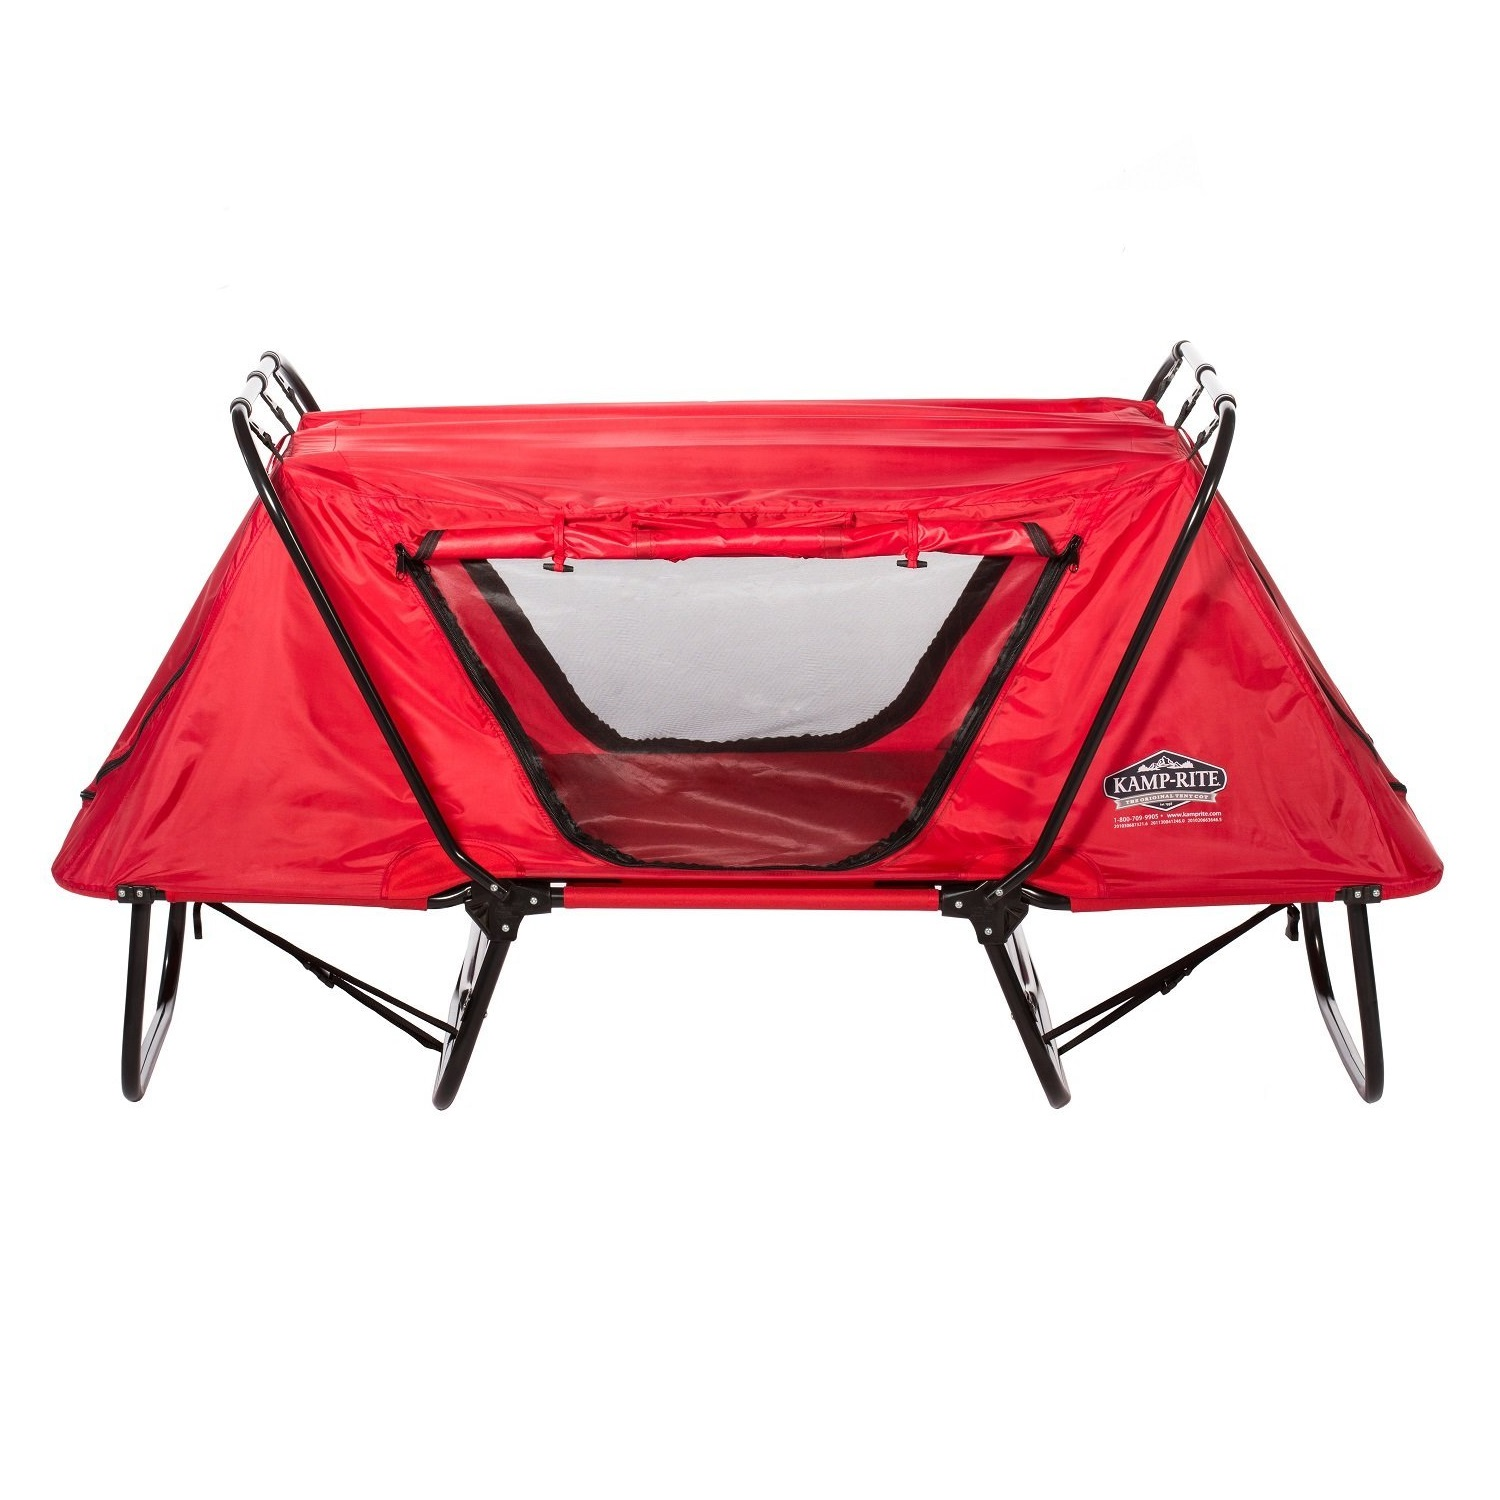 Kamp-Rite Kid Cot with Rain Fly Red by Kamp-Rite